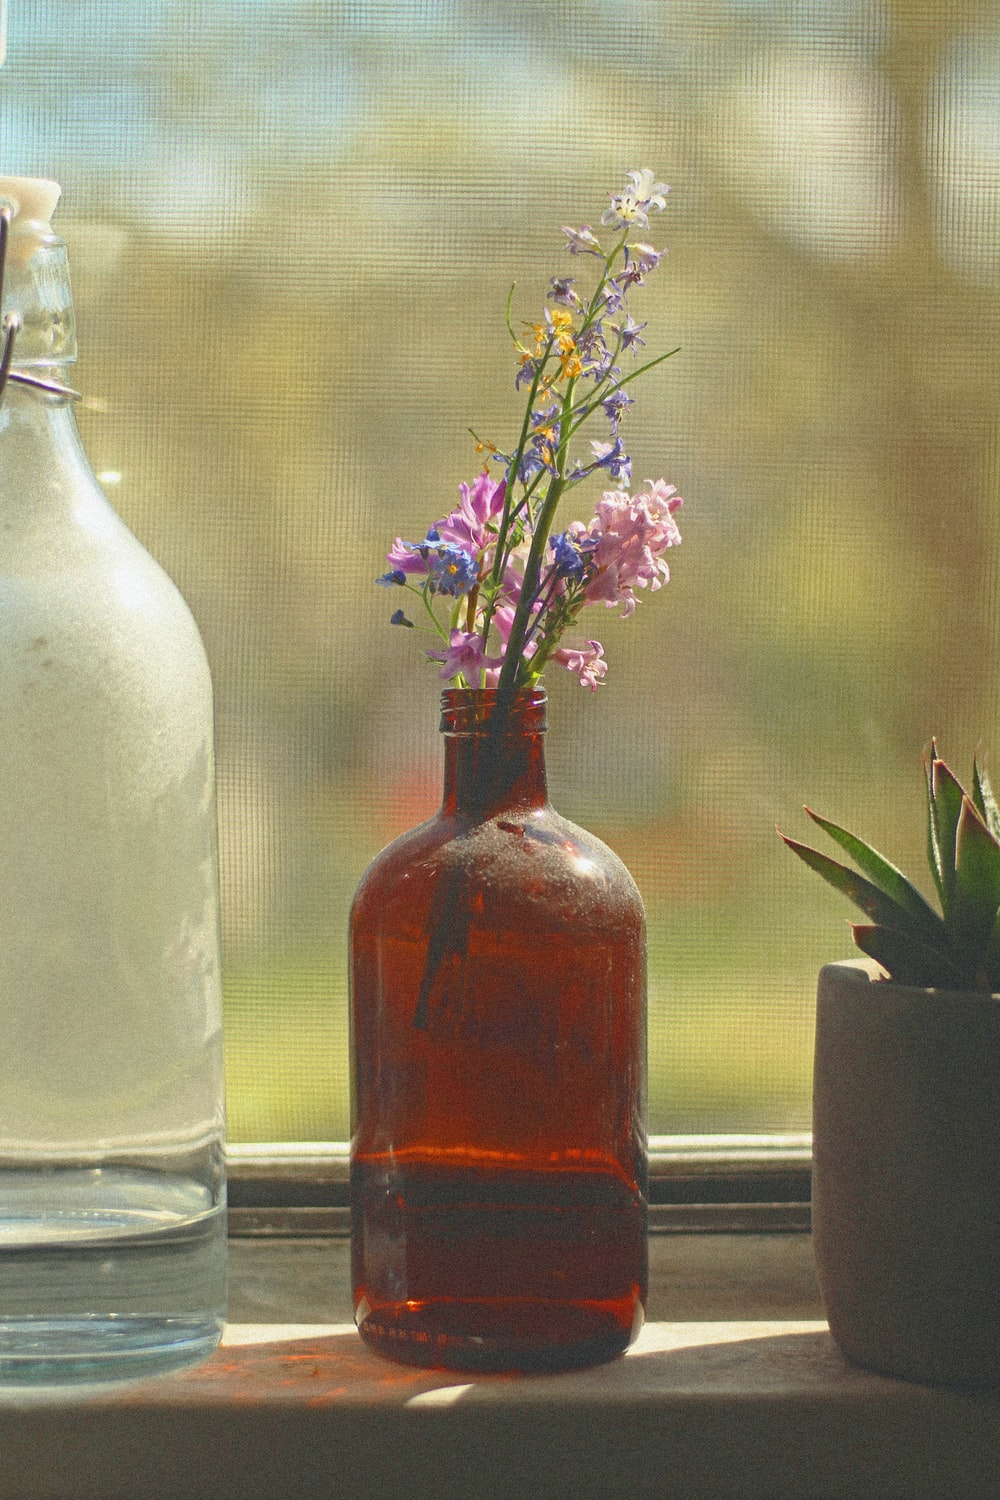 purple flowers in clear glass bottle